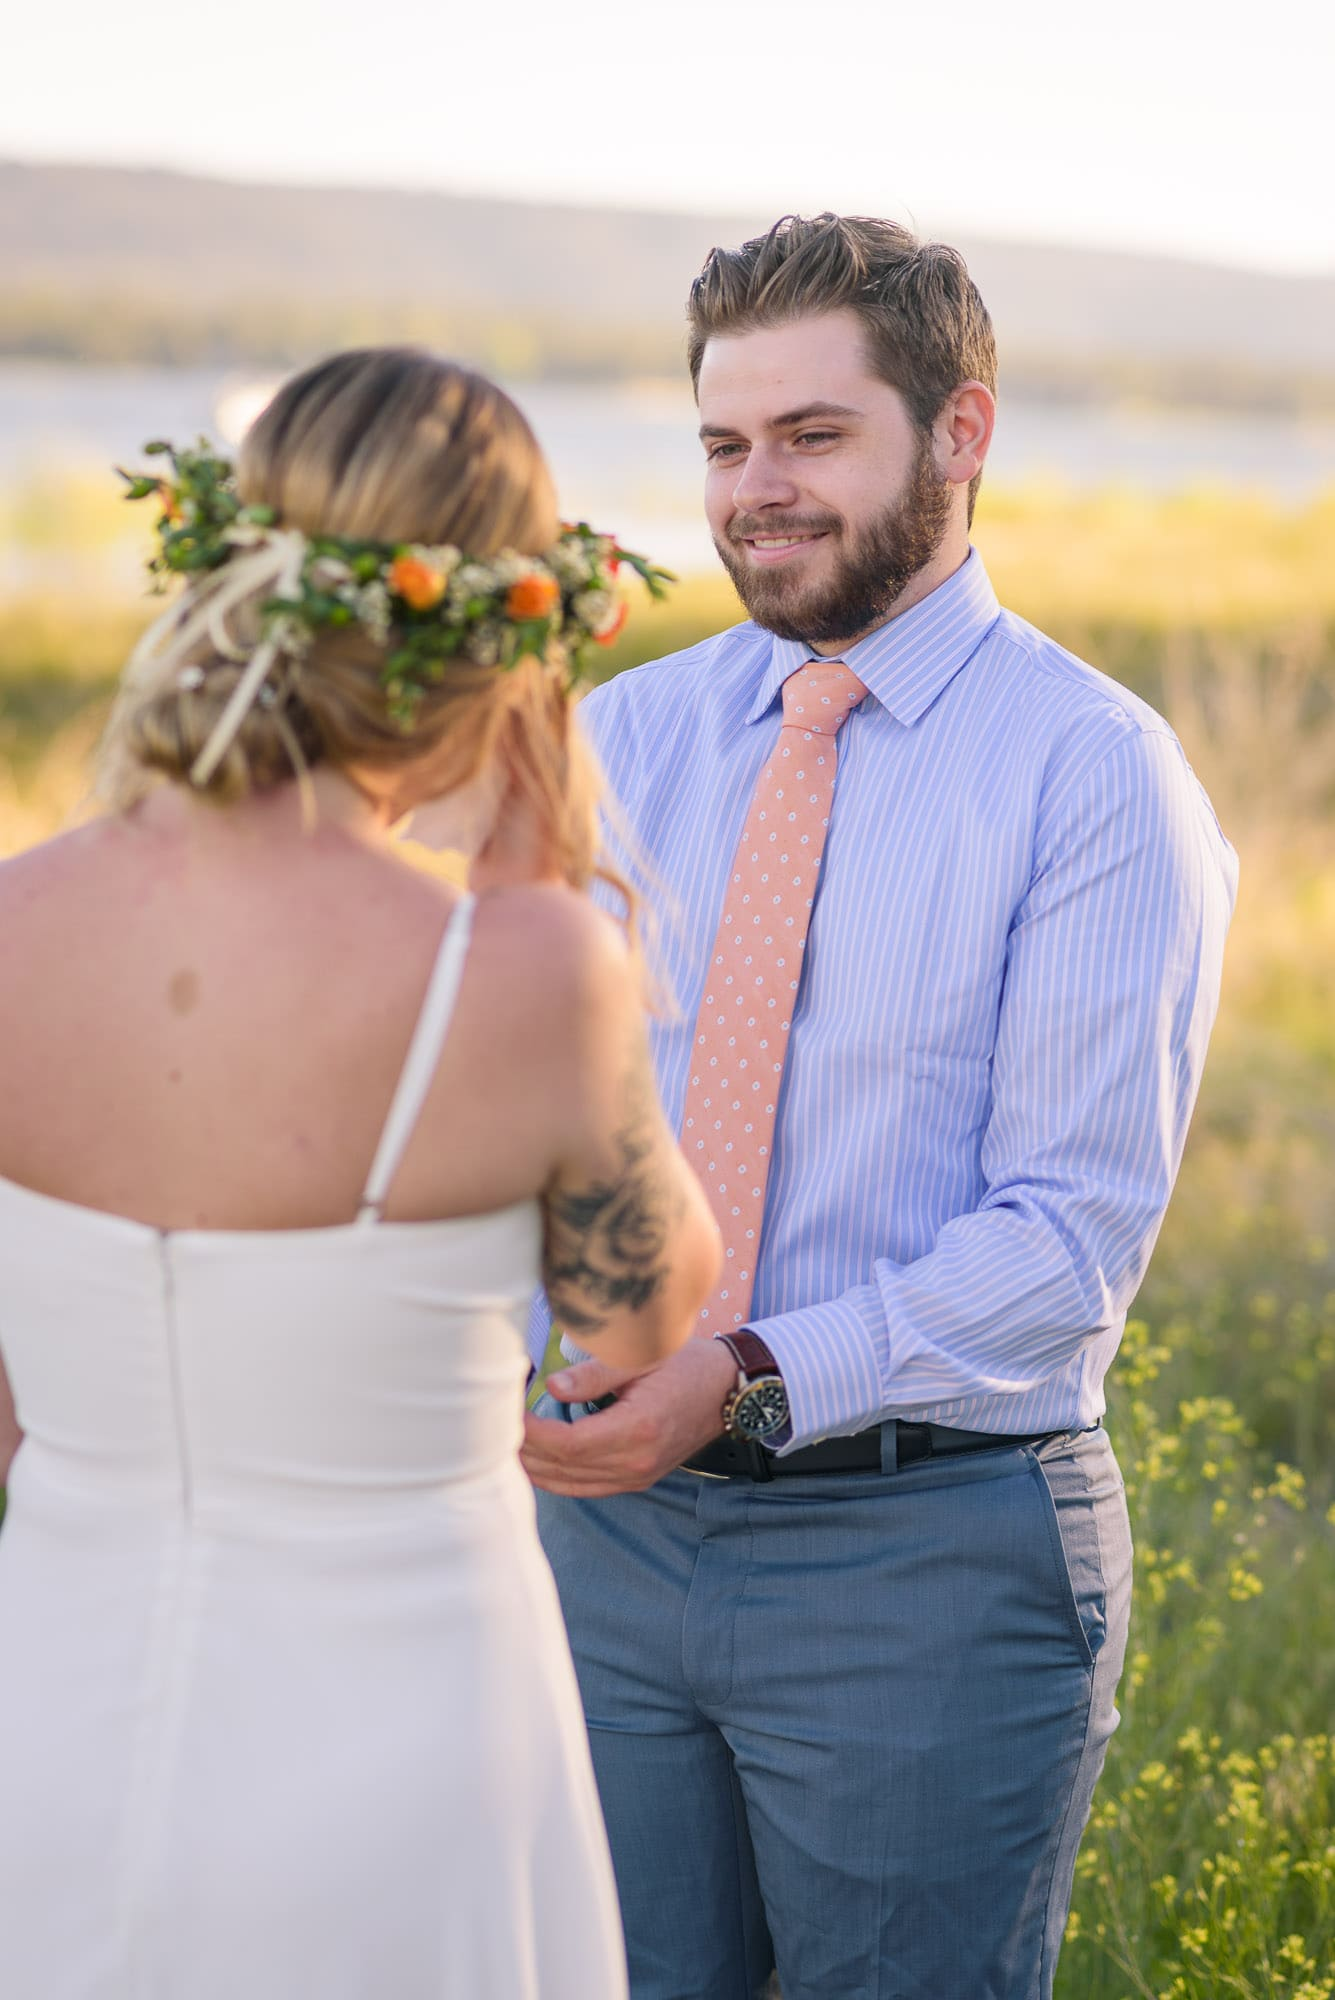 026_Alan_and_Heidi_Kensey_Josh_Big_Bear_Elopement